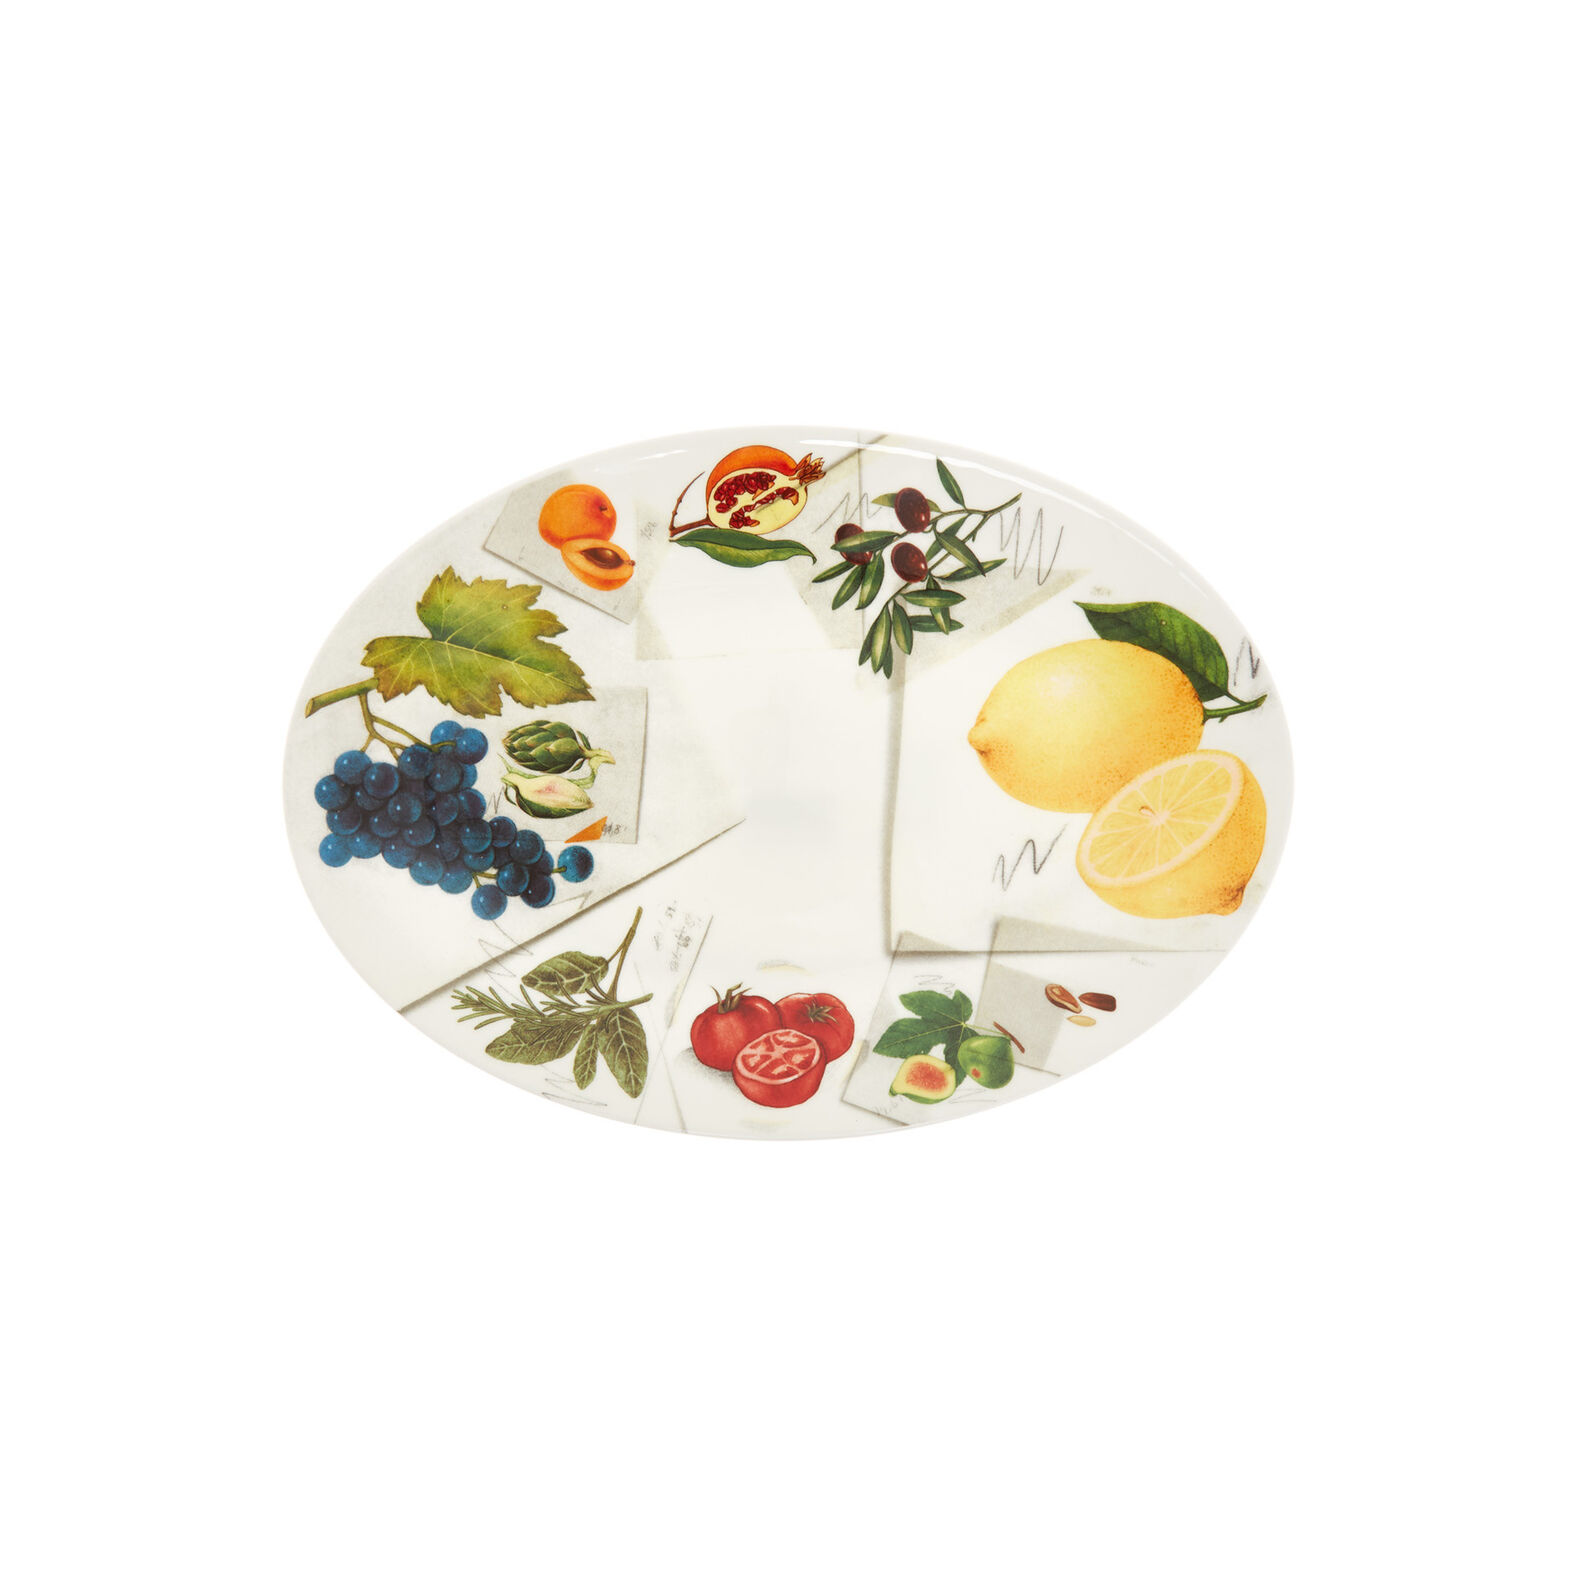 Fine bone china oval plate with vegan La Cucina Italiana decoration